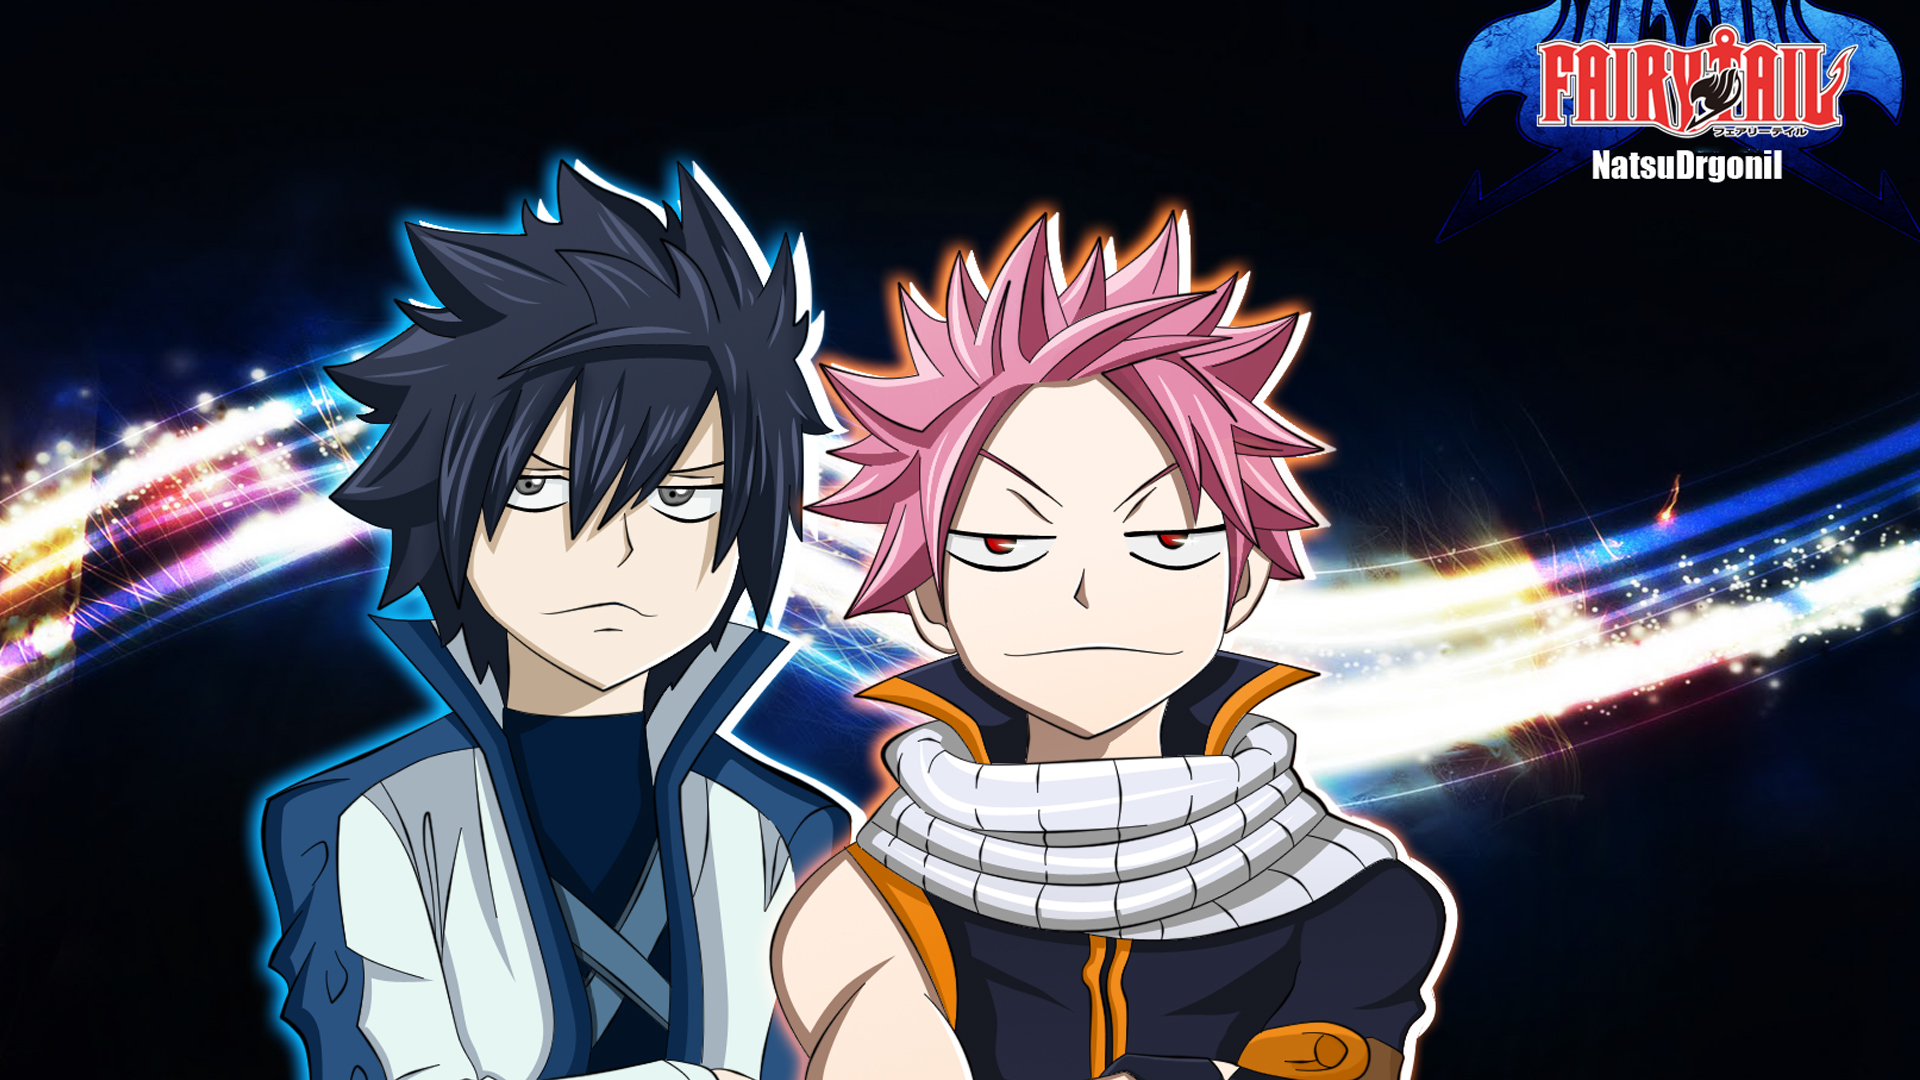 Gray and Natsu Fairy Tail 4a Wallpaper HD